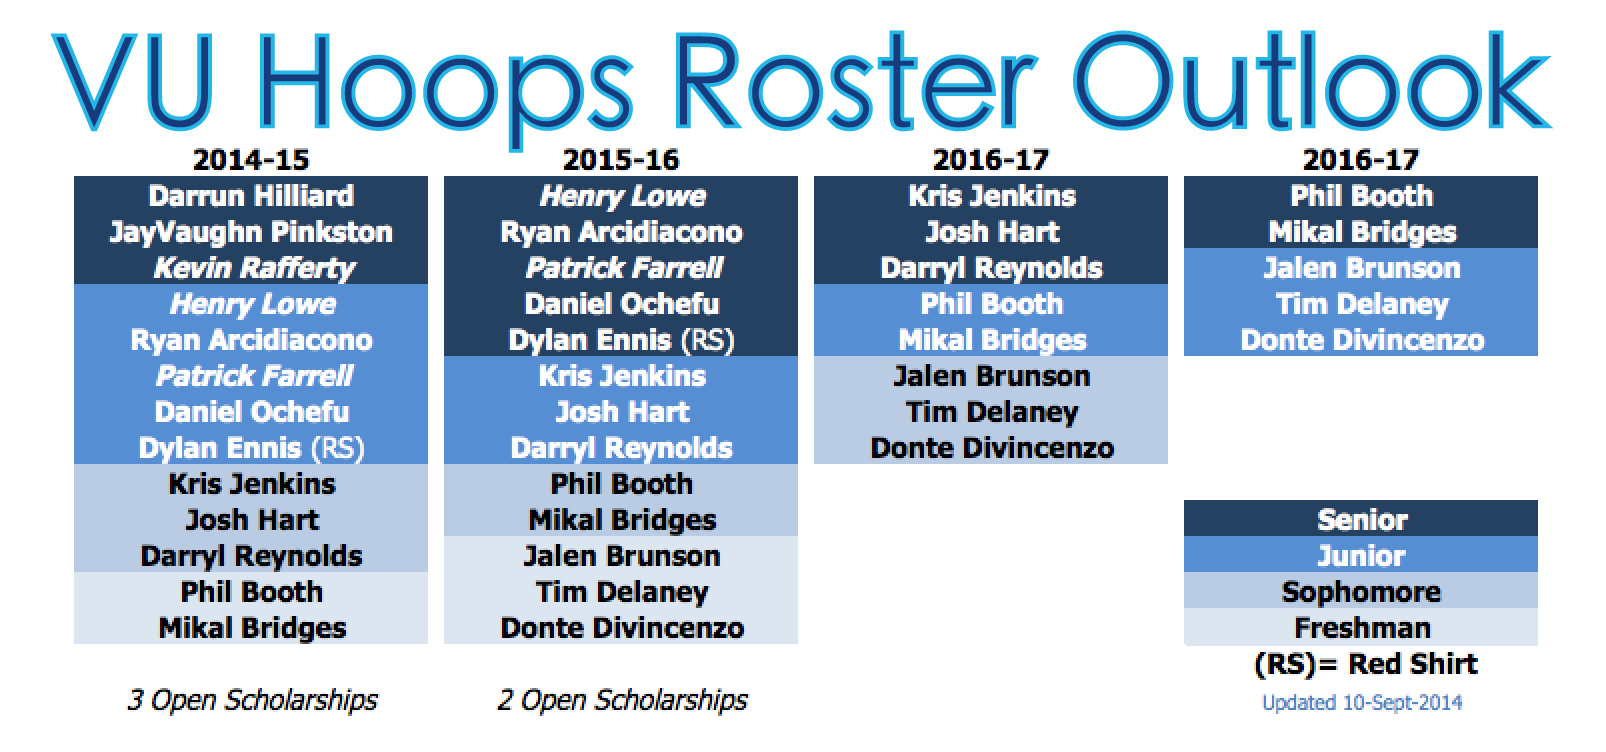 Roster_outlook_medium